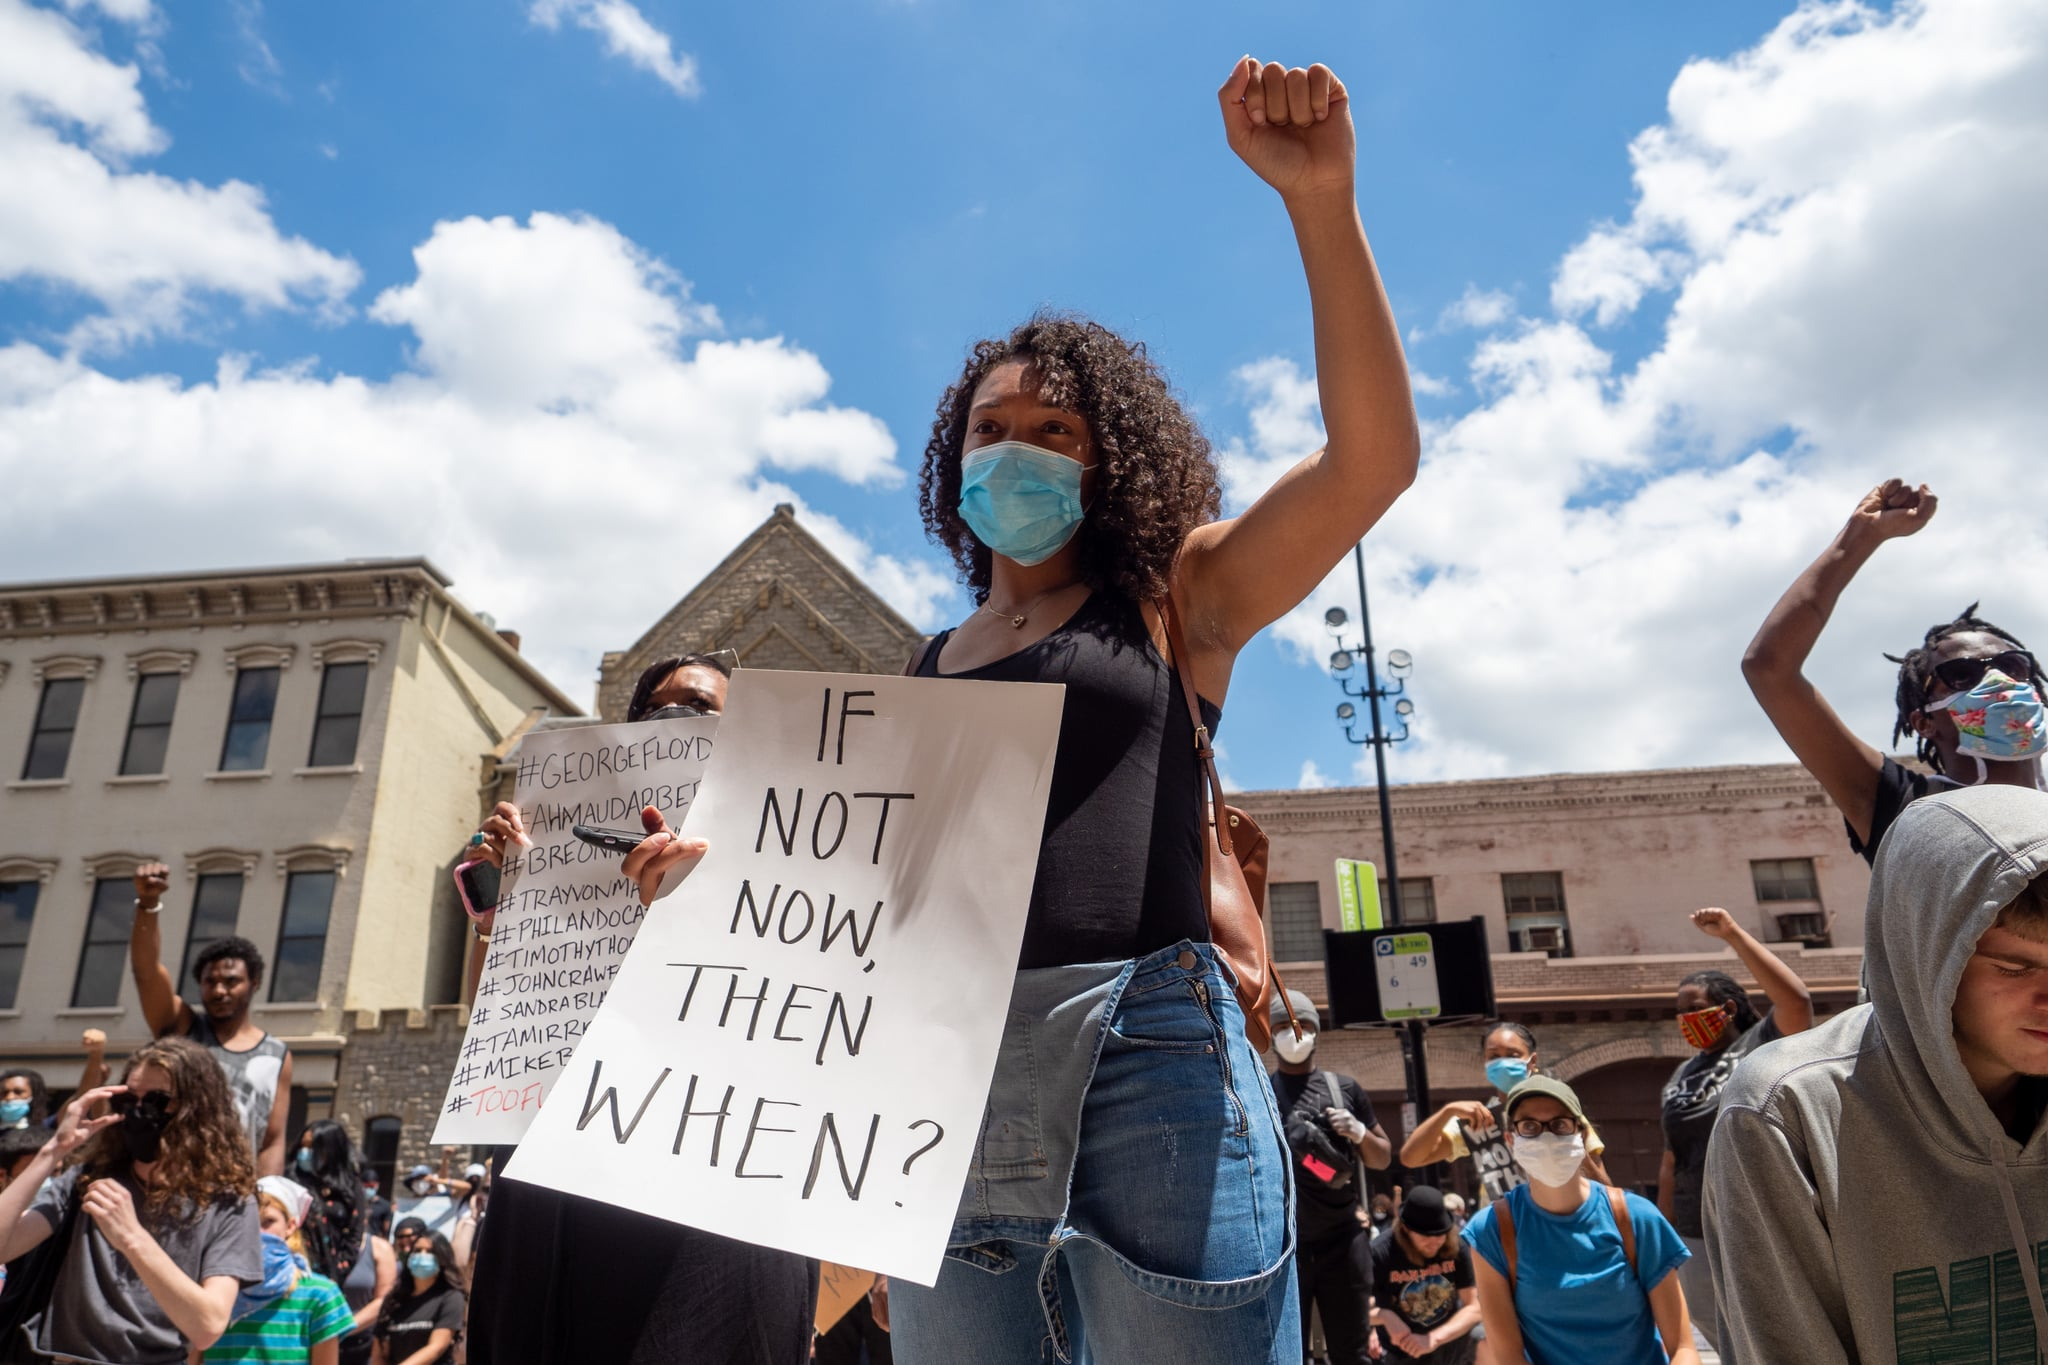 A woman holds up a sign during a Mass Action for Black Liberation protest and march from Washington Park to City Hall following the alleged murder of George Floyd, Saturday, May 30, 2020, in Cincinnati, Ohio, United States. (Photo by Jason Whitman/NurPhoto via Getty Images)